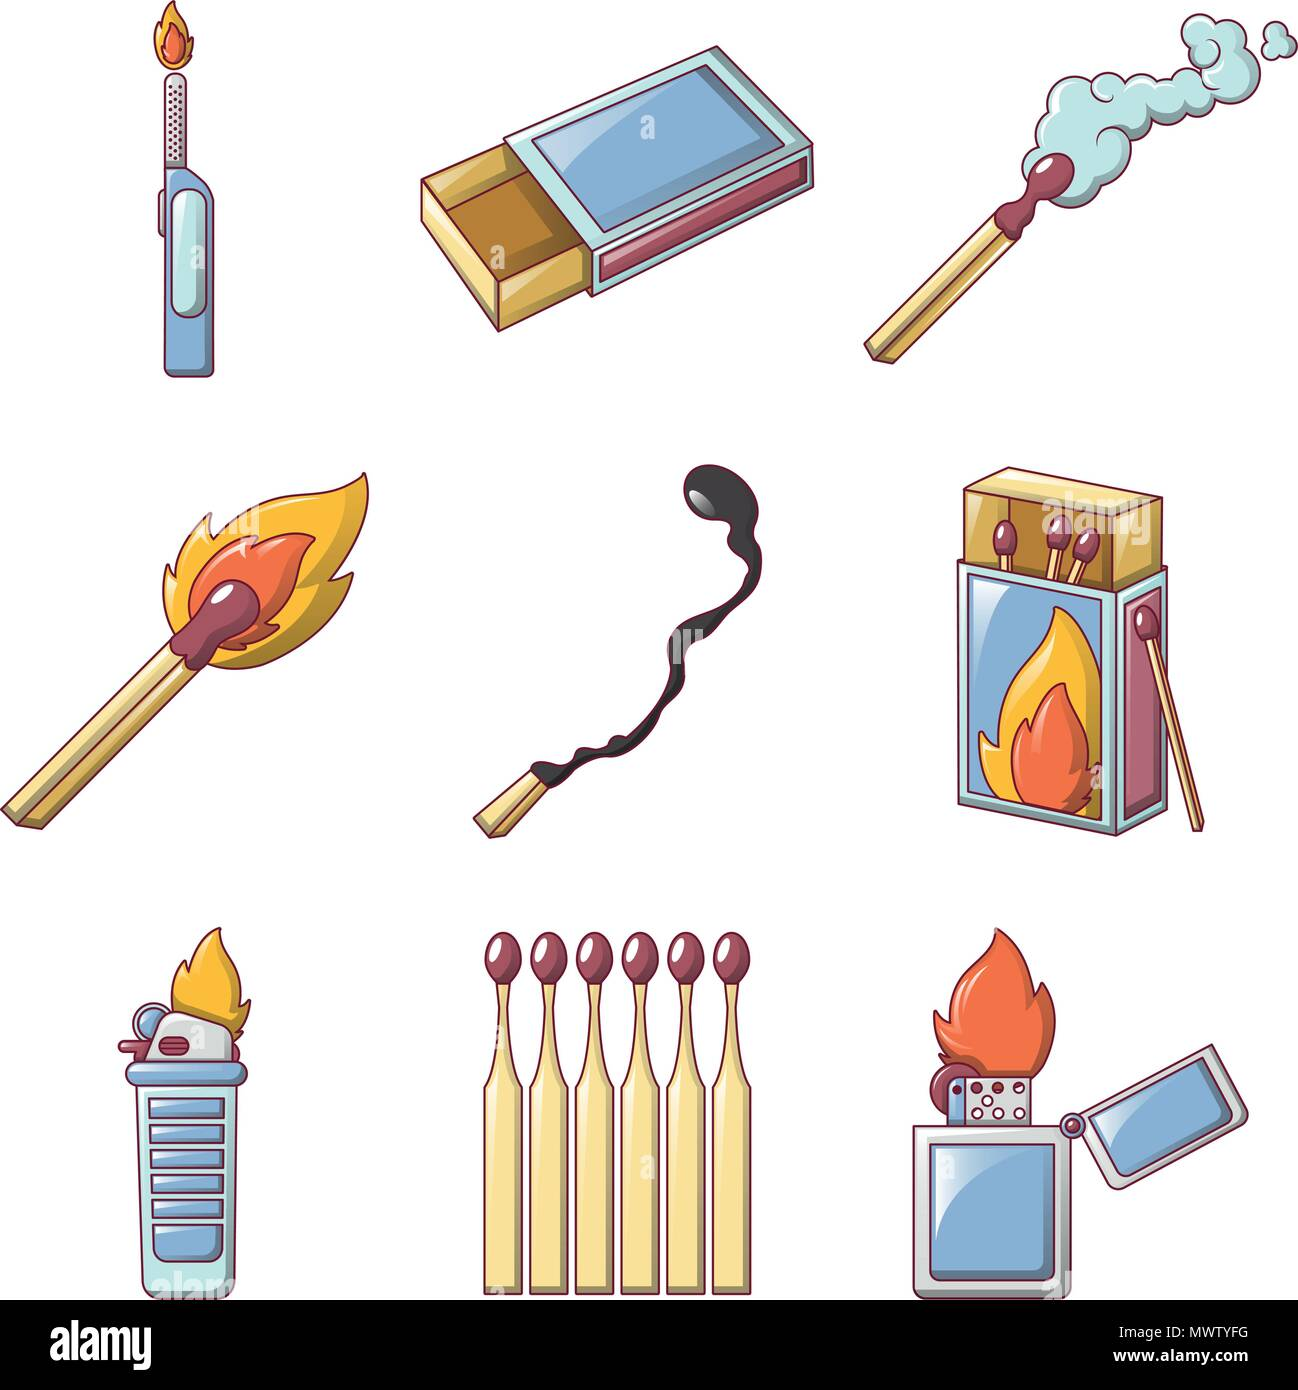 Safety match ignite burn icons set, cartoon style - Stock Image